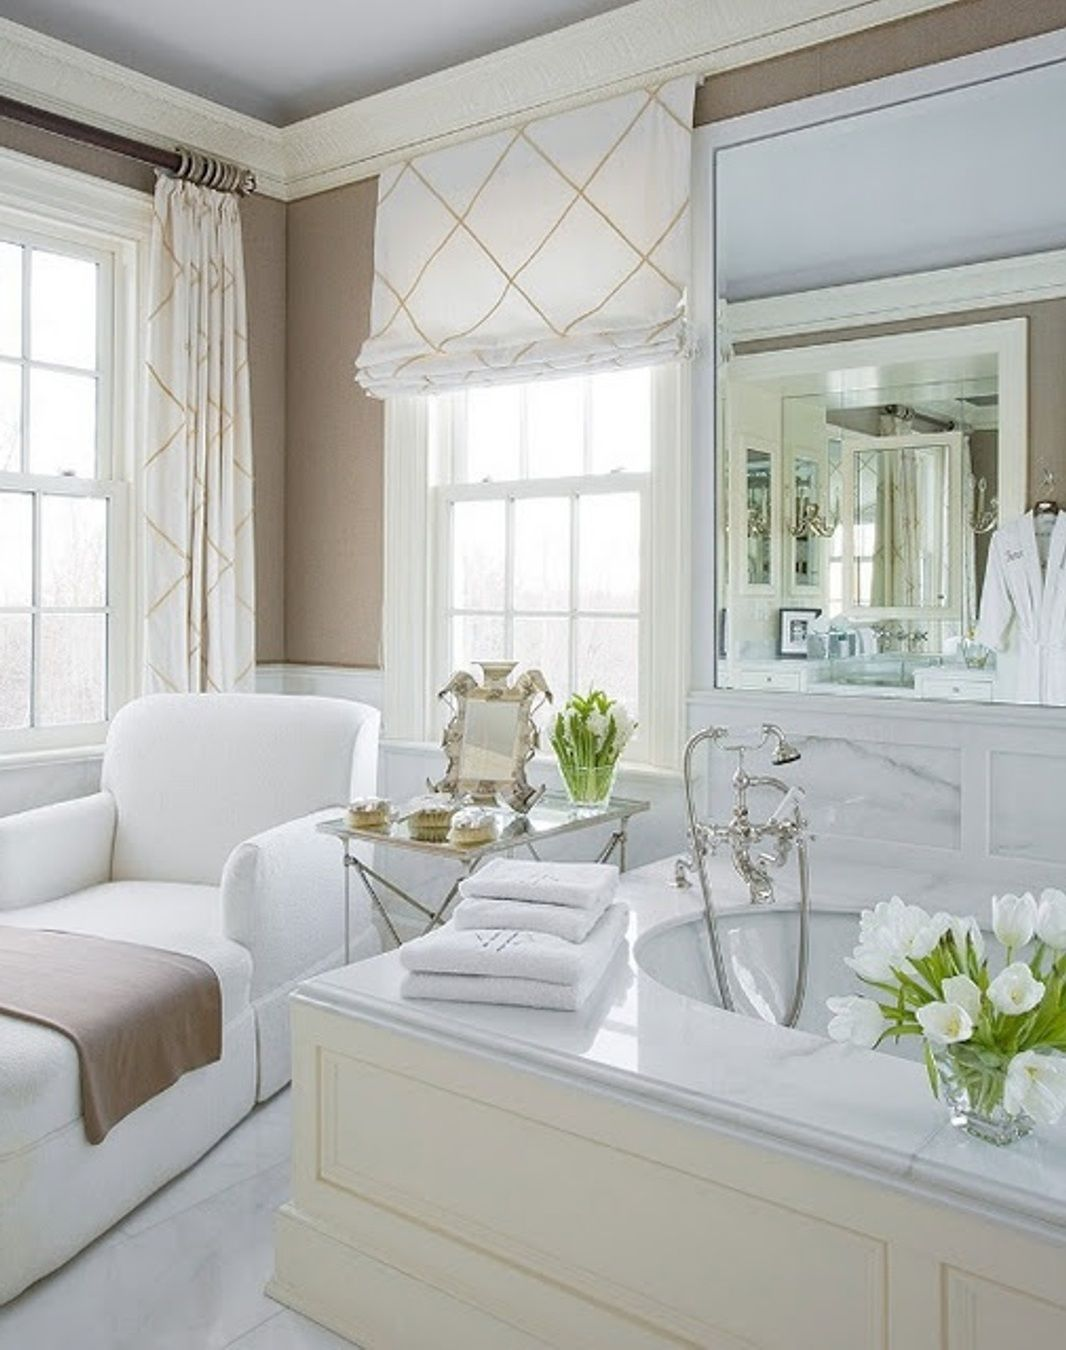 stunning bathroom window treatments - Bathroom Window Treatments